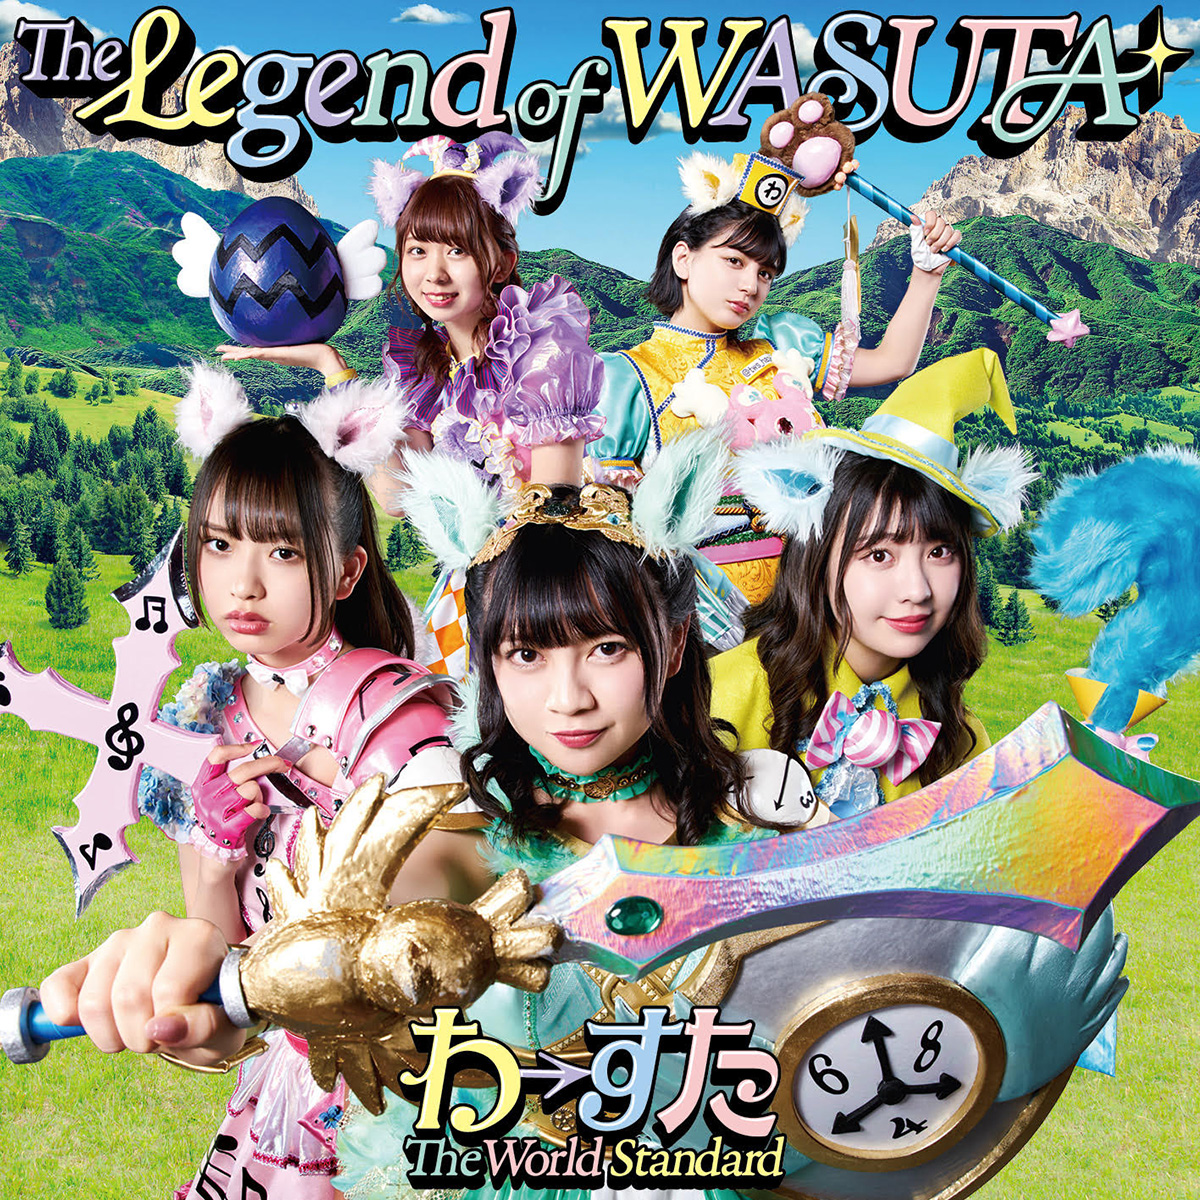 Wasuta Legend of Wasuta